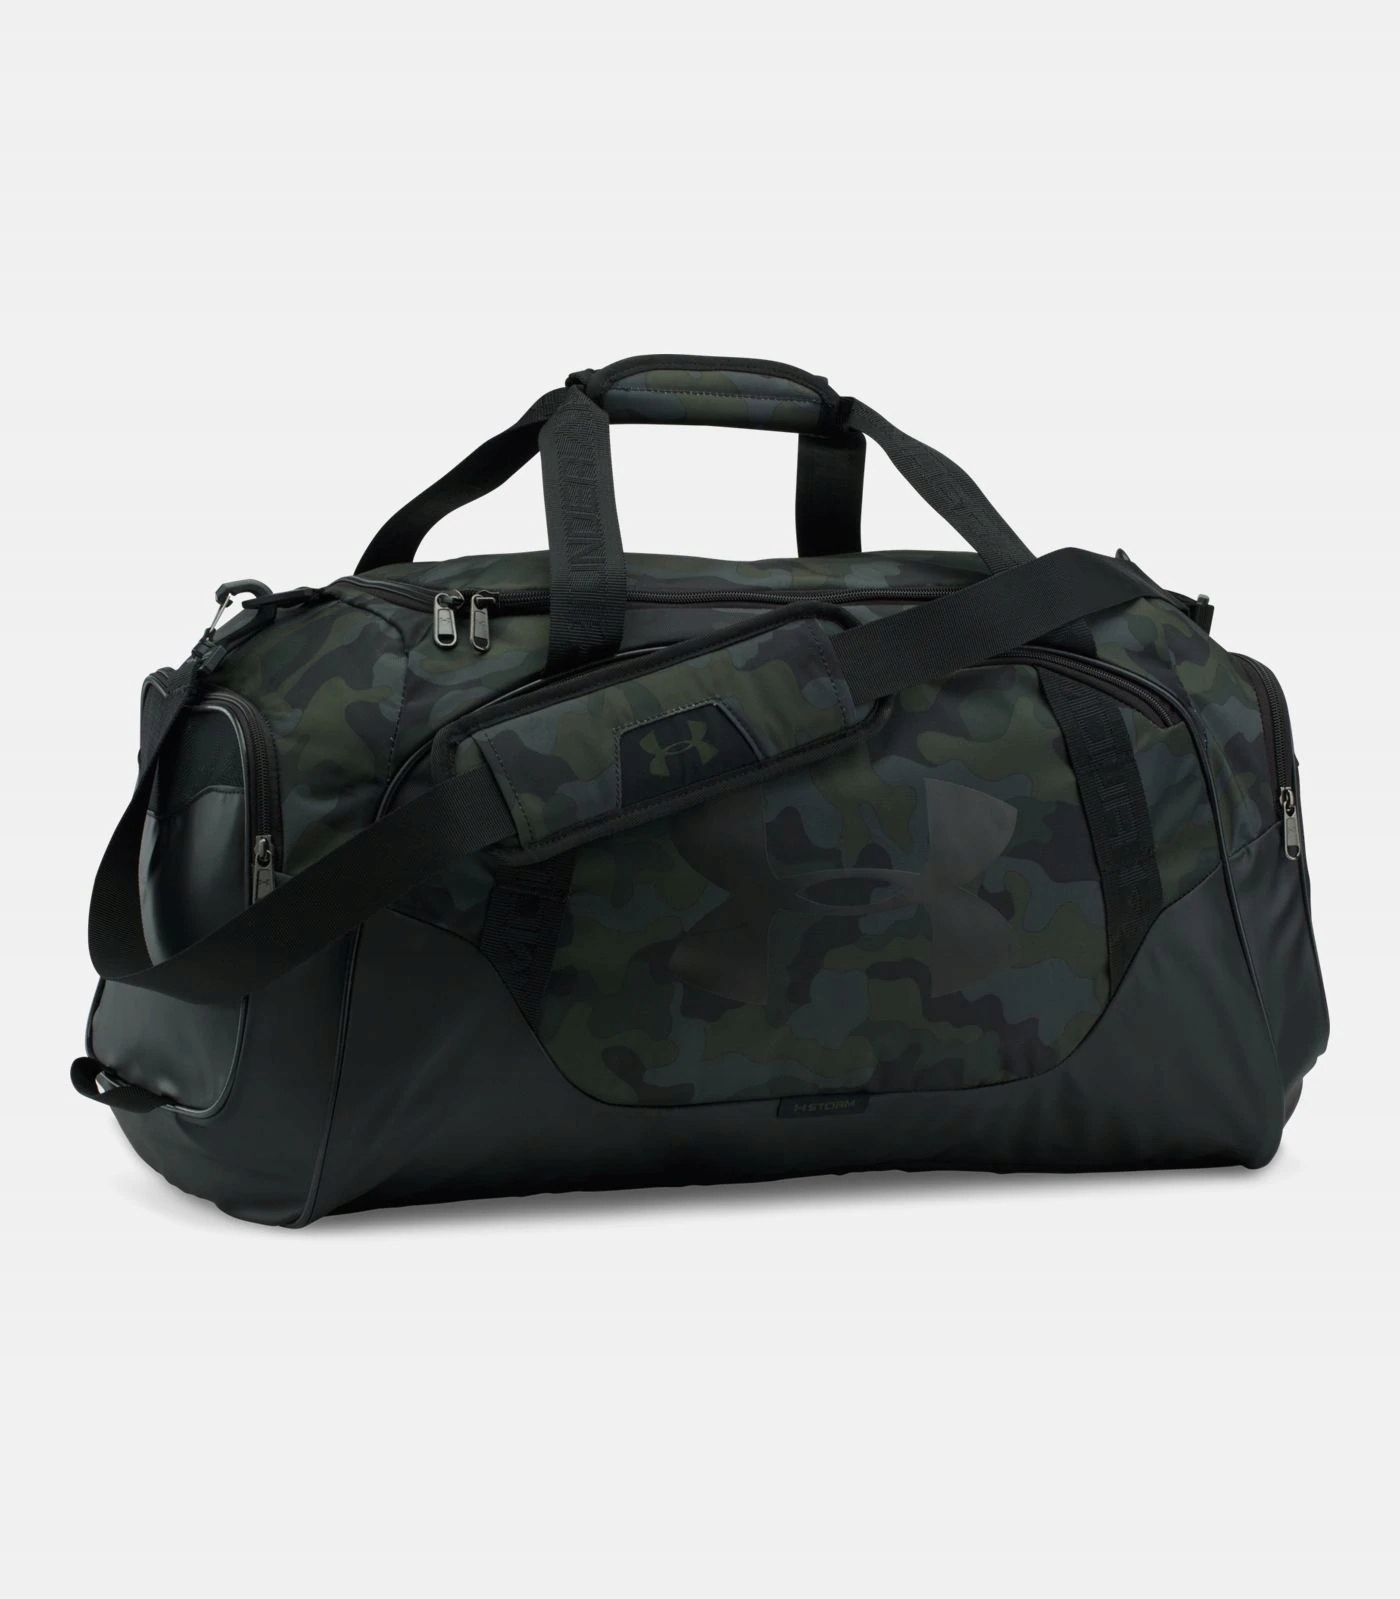 5b473b98d064f UNDER ARMOUR TORBA MD DUFFEL 3 MORO CAMO 1300213 - 7722402514 ...